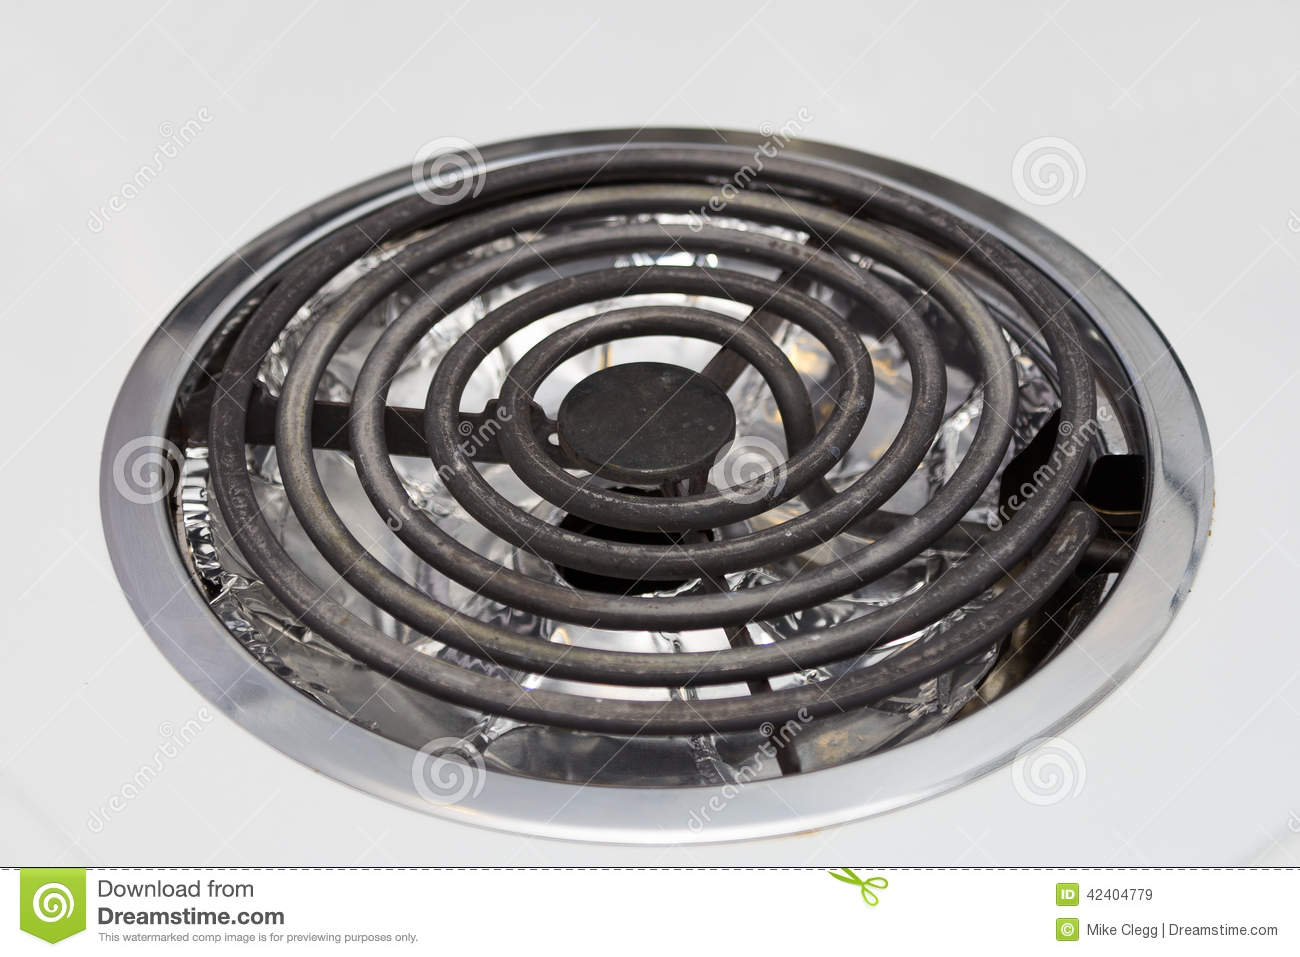 Ring on a Cooker